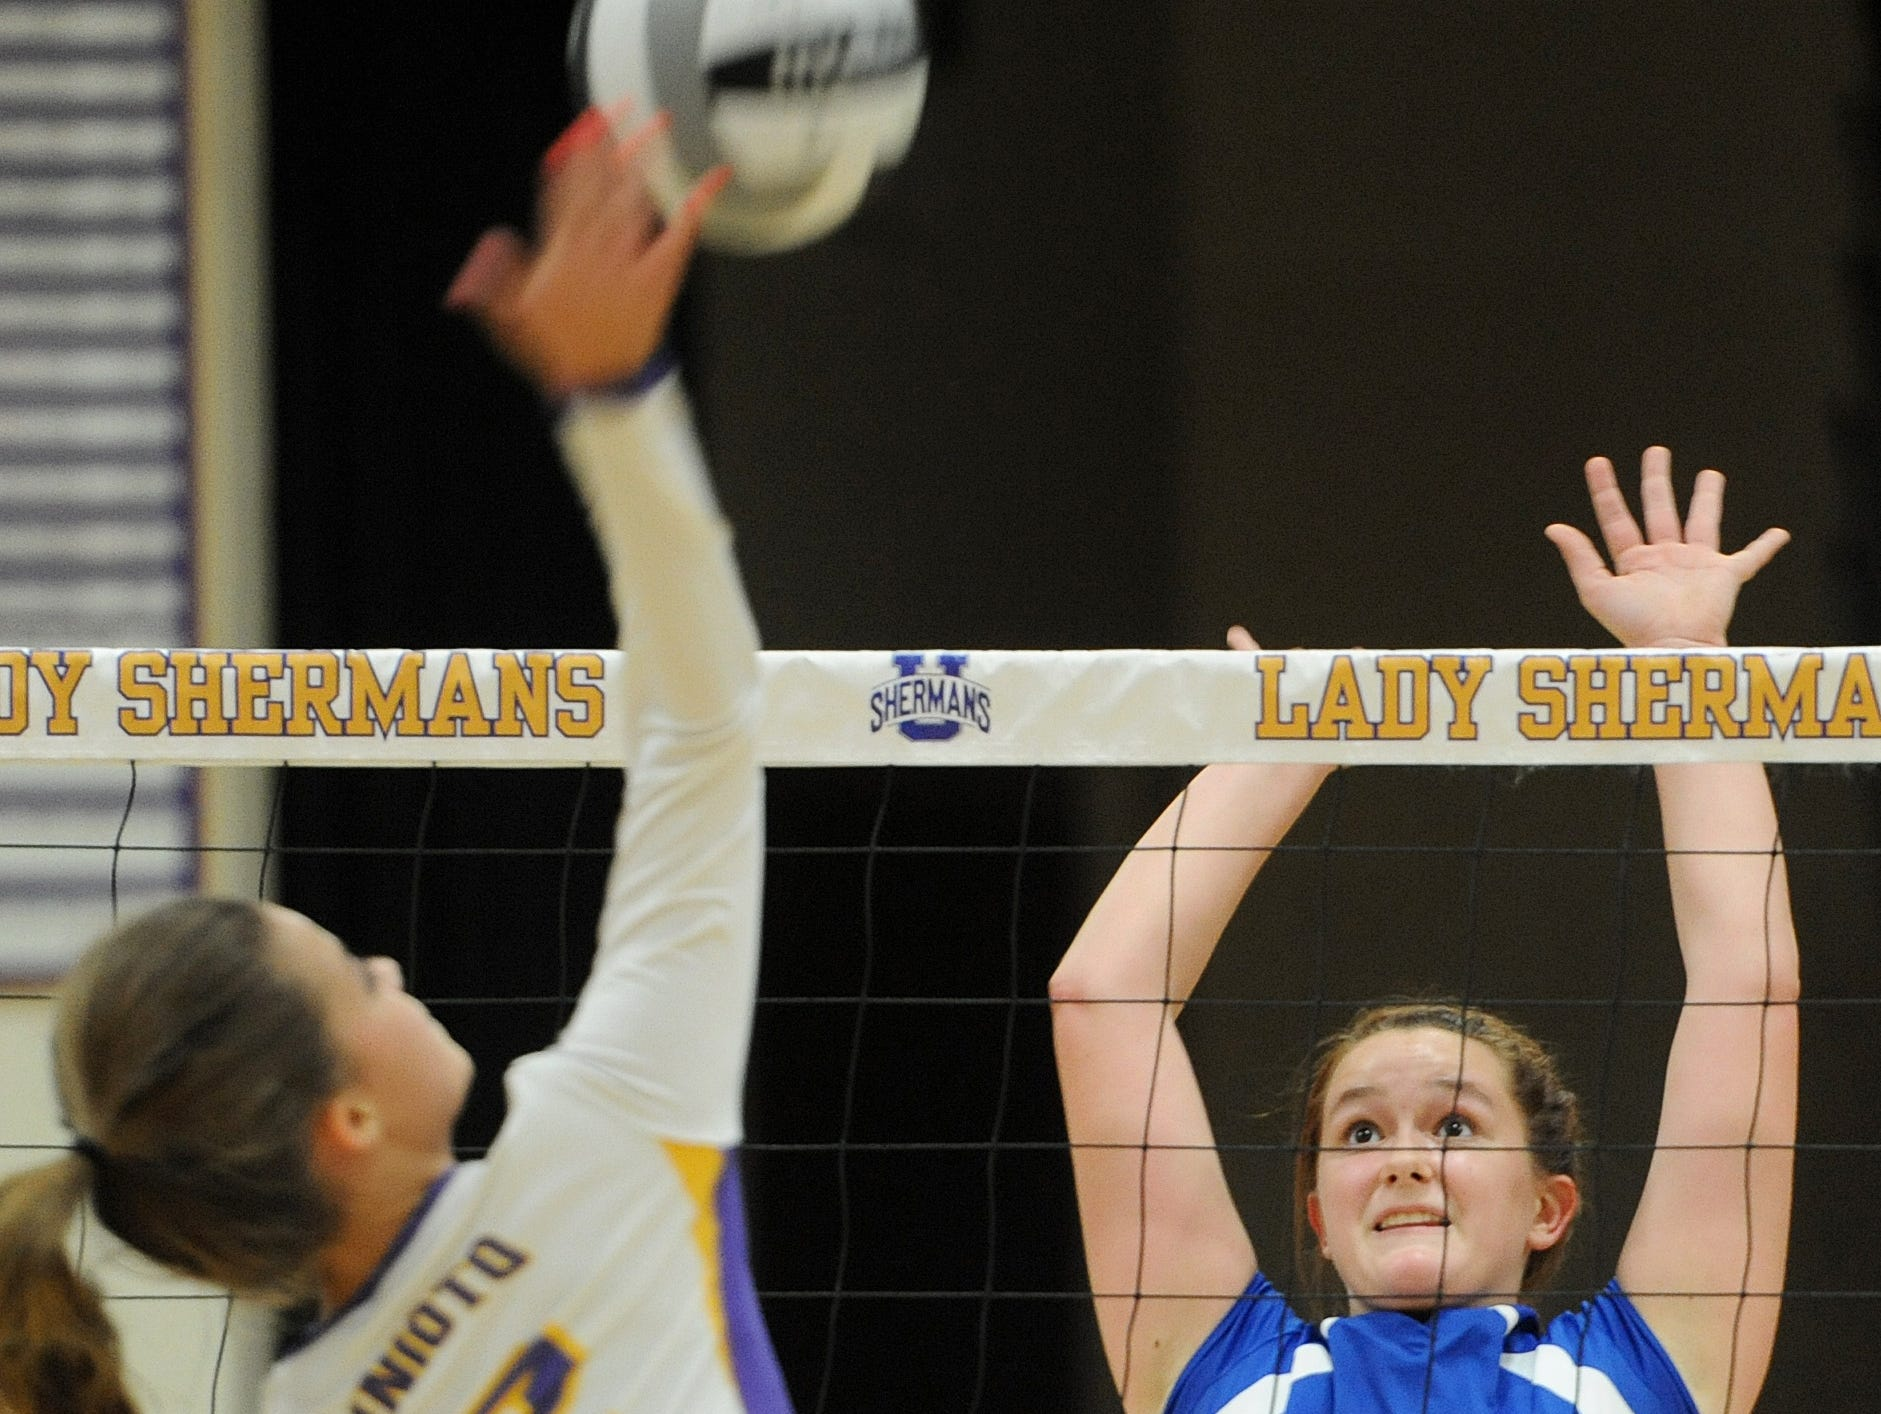 Zane Trace's Hannah Unger jumps to block the ball hit across the net by Unioto's Abbey Winegardner during the second match at Unioto on Thursday. the final score was Unioto 3, Zane Trace 0.